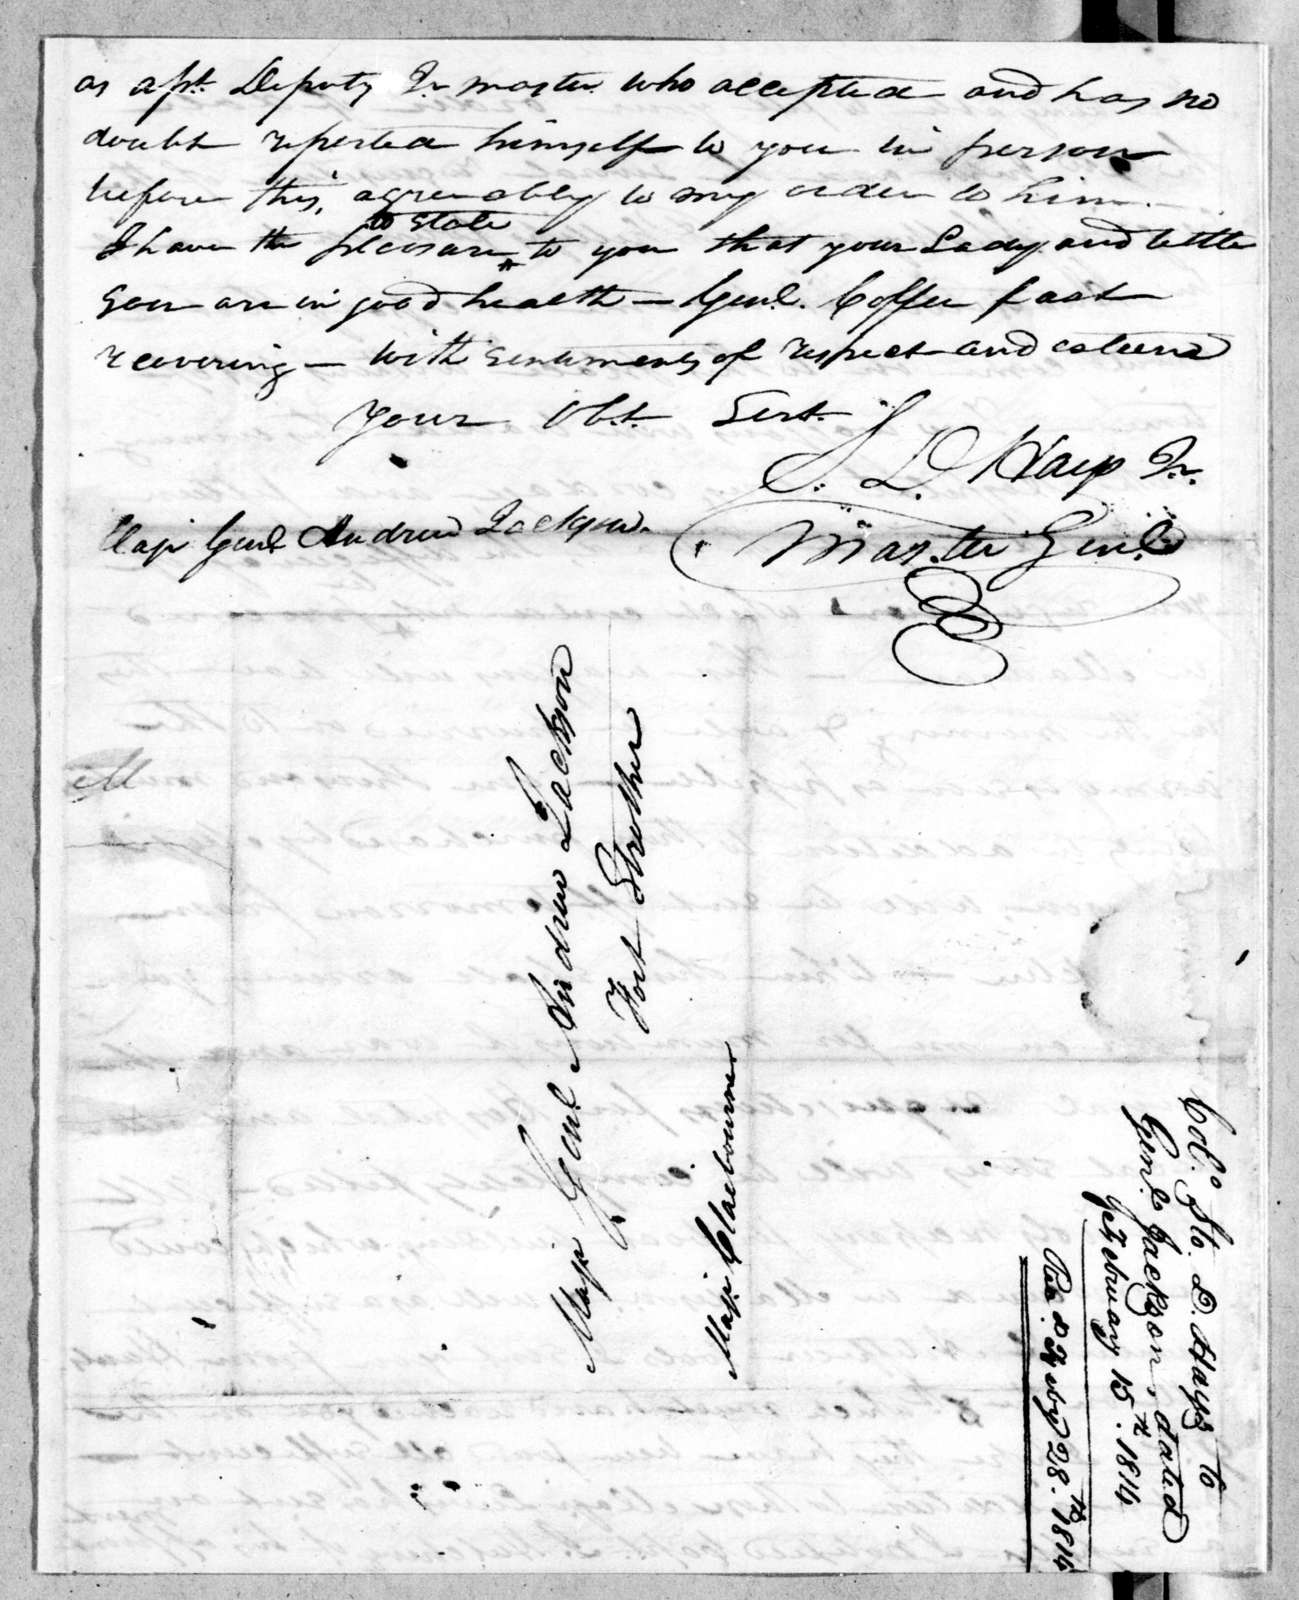 Stockley Donelson Hays to Andrew Jackson, February 15, 1814